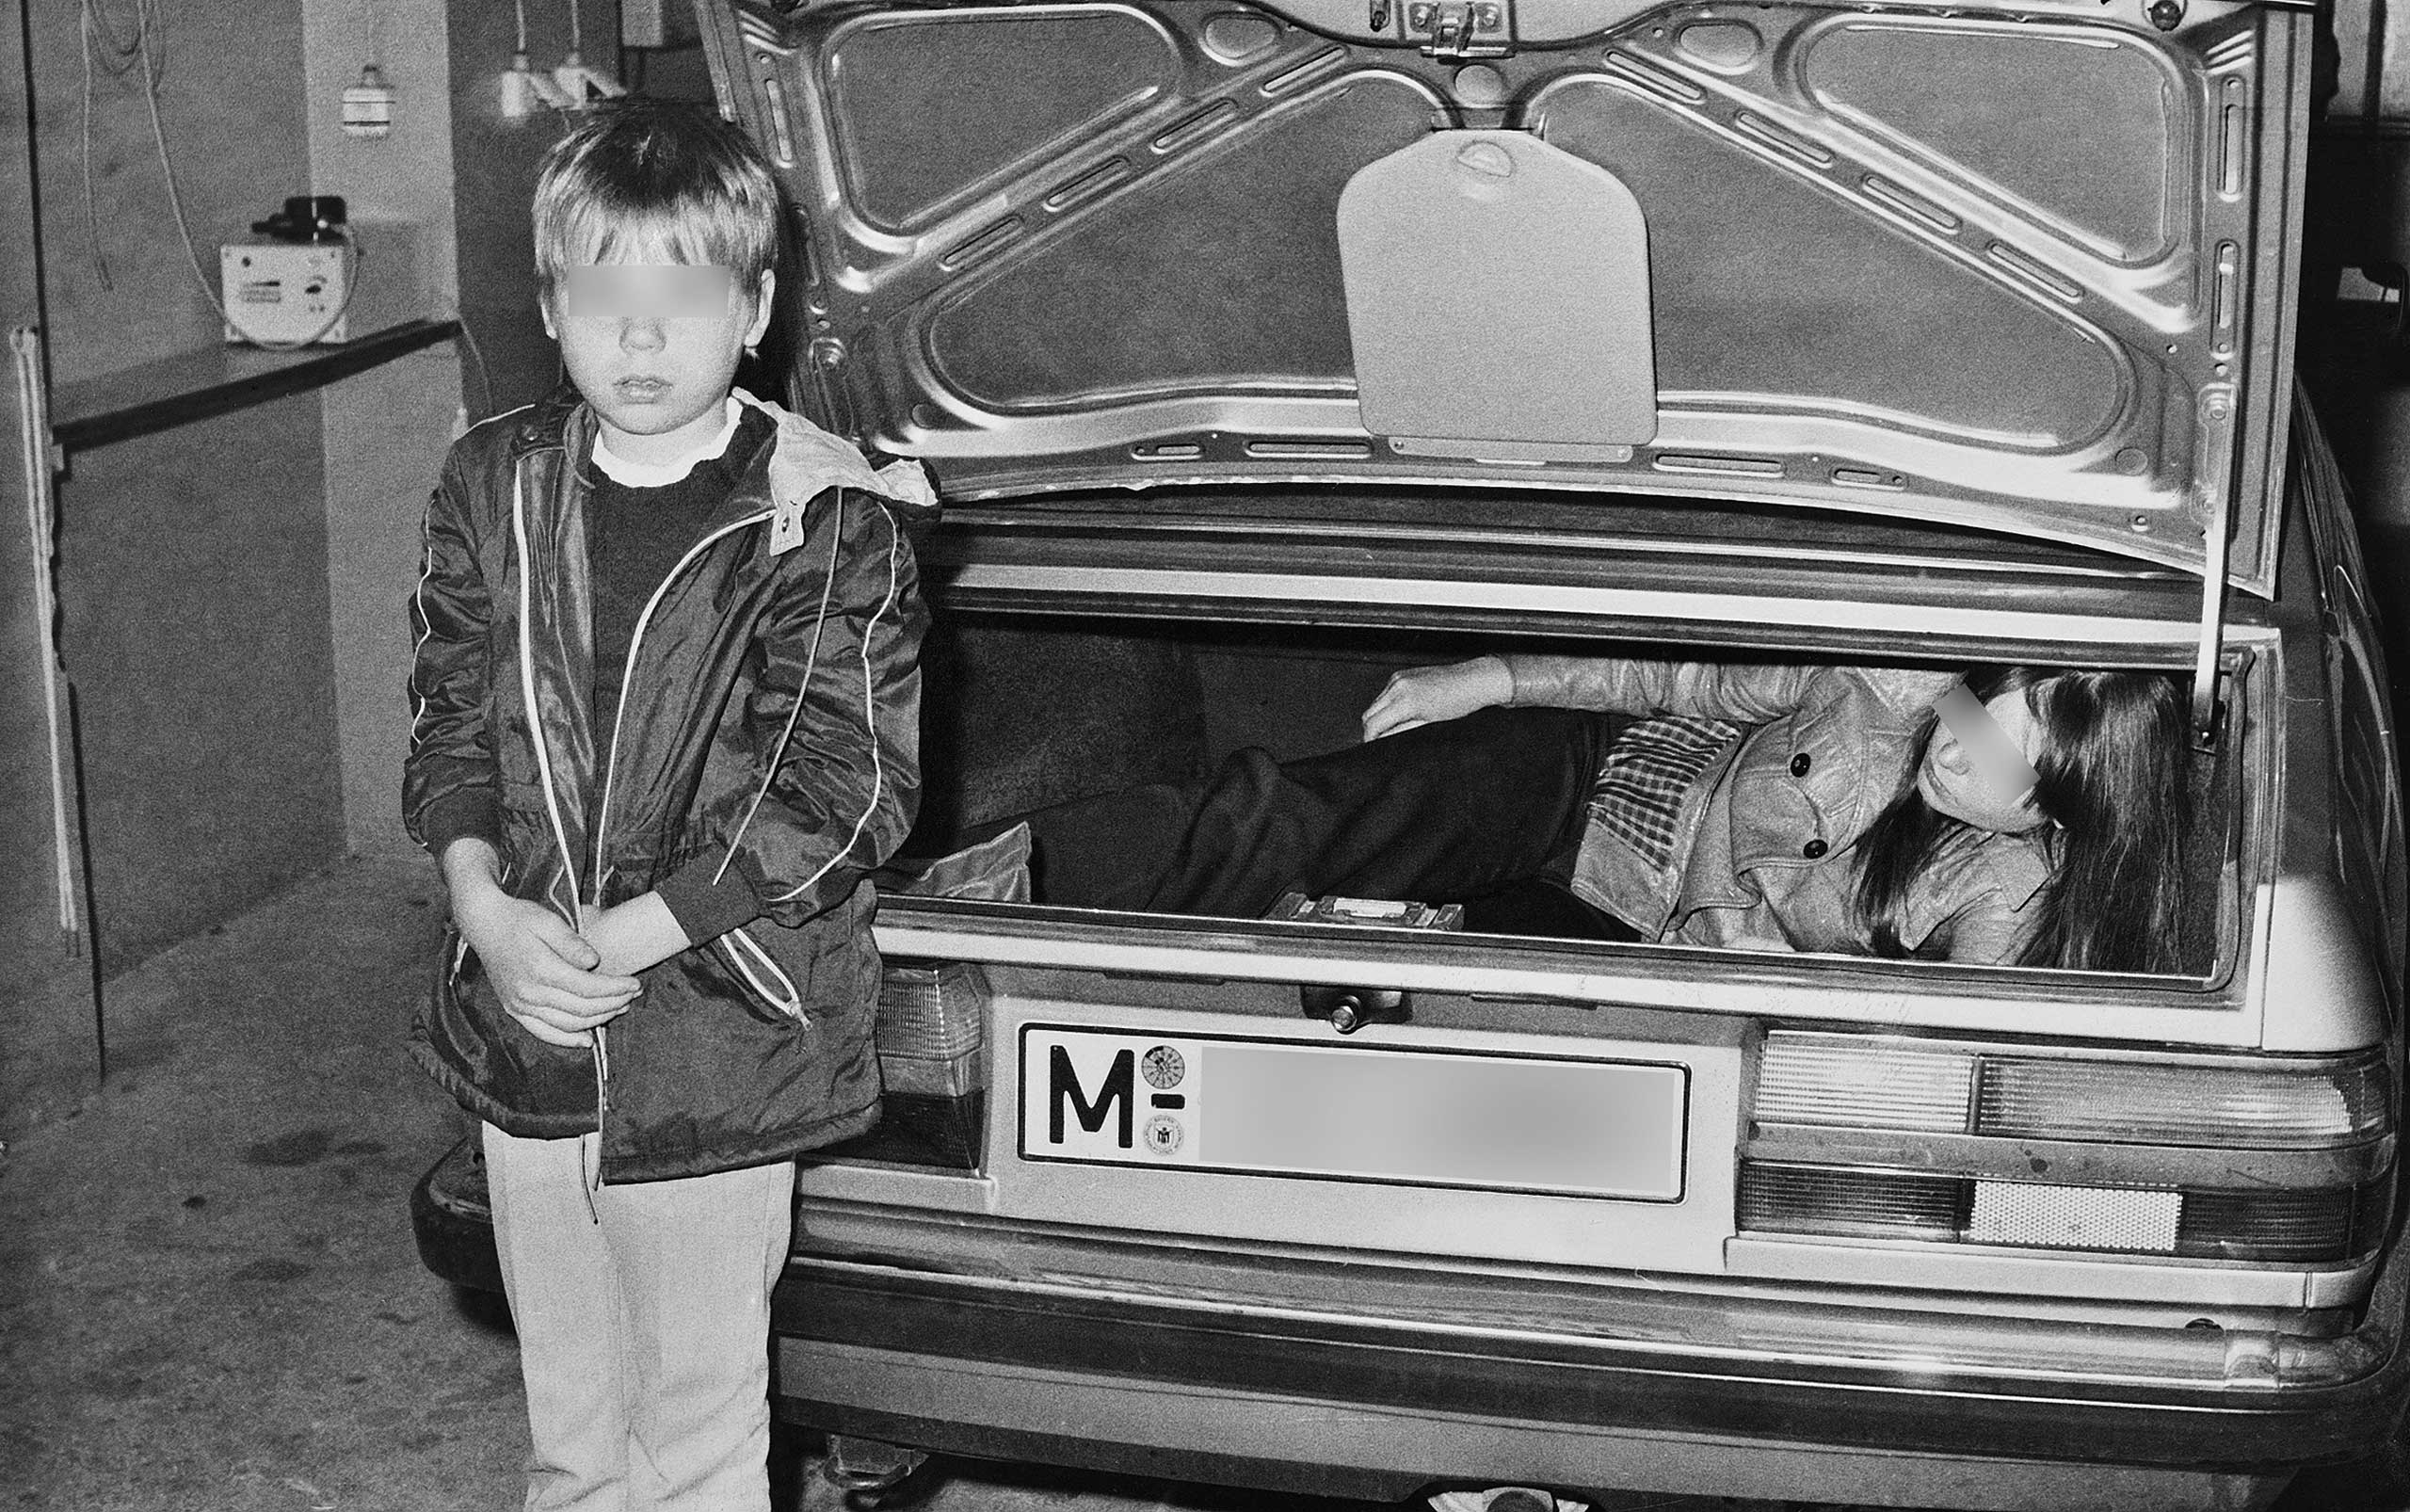 Documentation of a failed escape attempt by a mother and son on Sept. 12, 1983, around half past midnight, at border crossing point Marienborn/freeway in the trunk of BMW car with Munich license plates. Both the escape helper and the mother and son were forced to reenact the attempt in a custom's building immediately after they were caught.